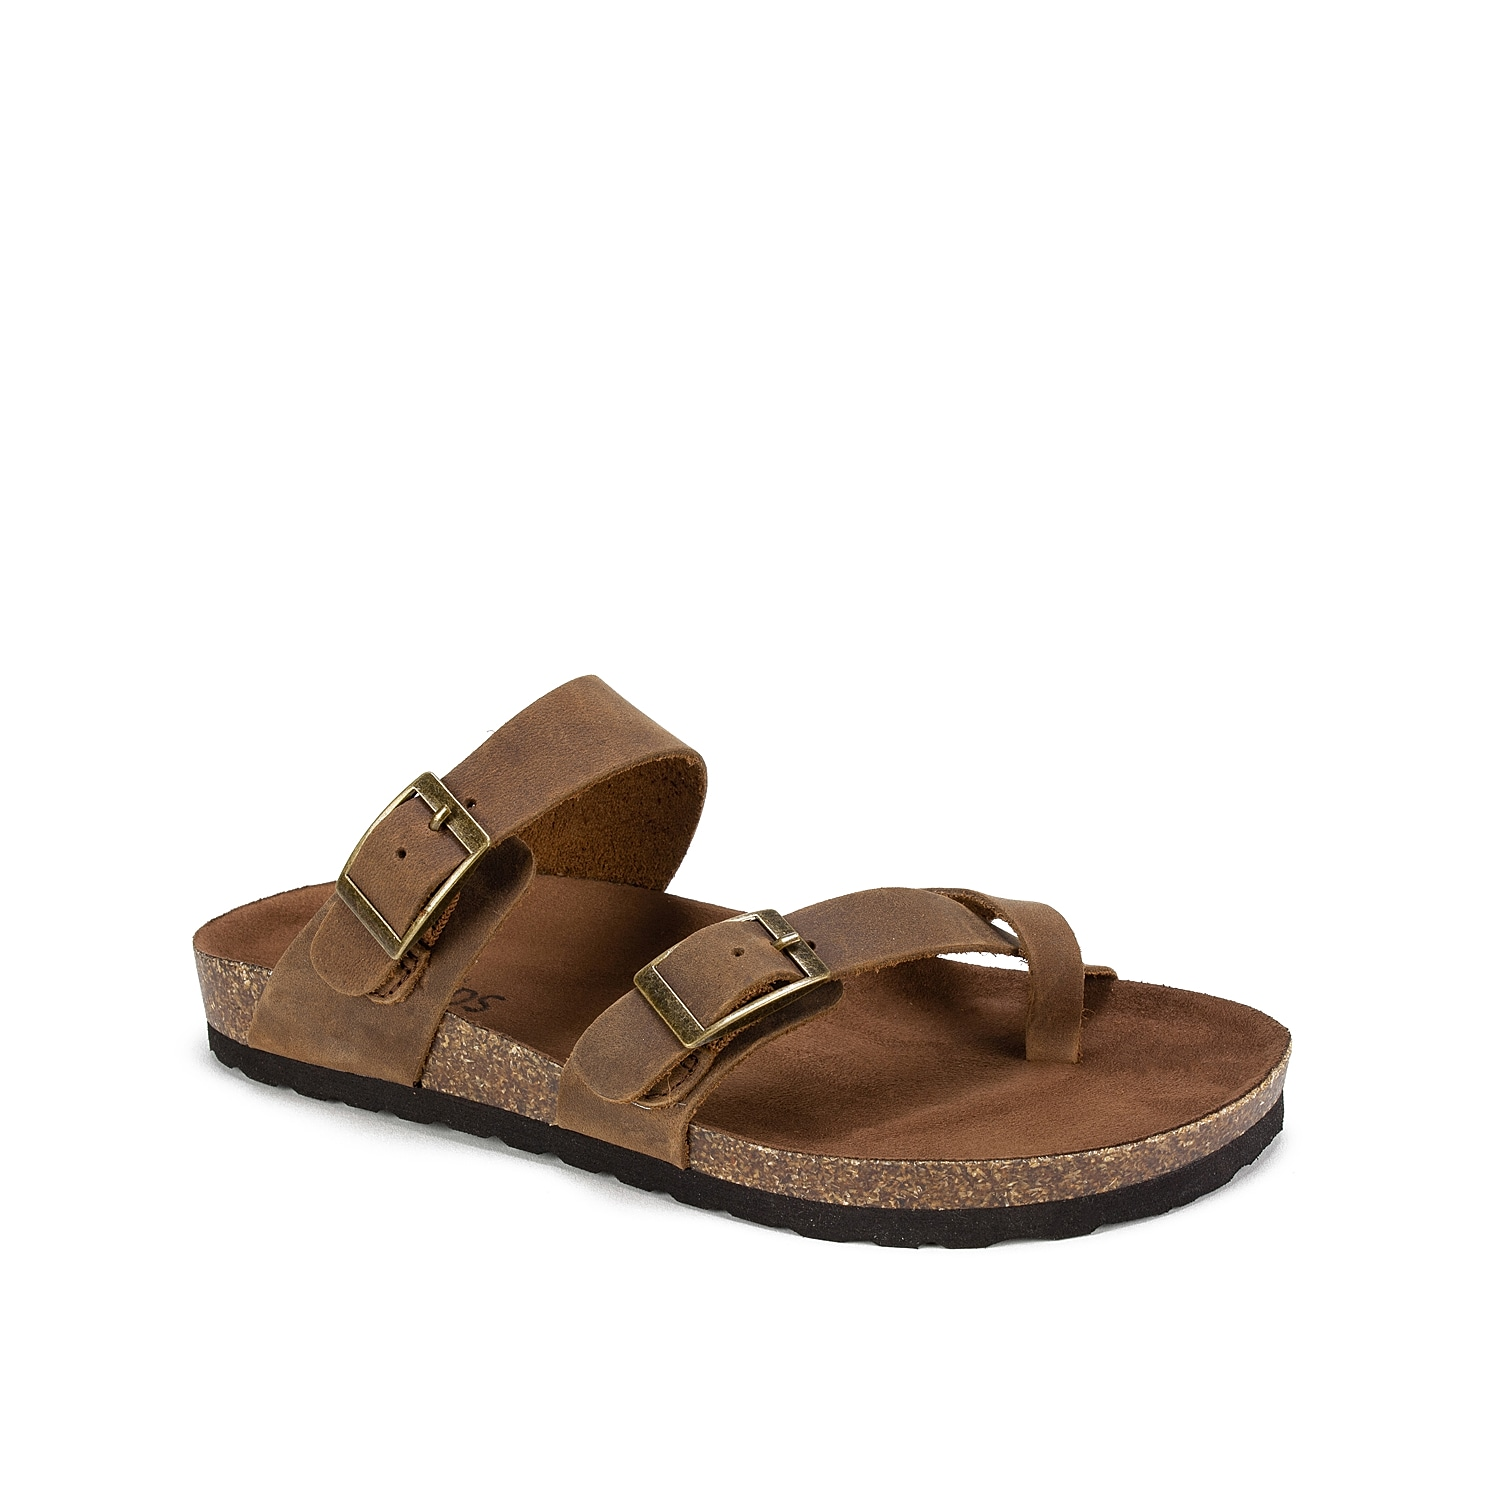 The Gracie from White Mountain will become your new summer staple. A microfiber-lined contoured footbed will keep you comfortable at your next backyard BBQ or trip to the mall.